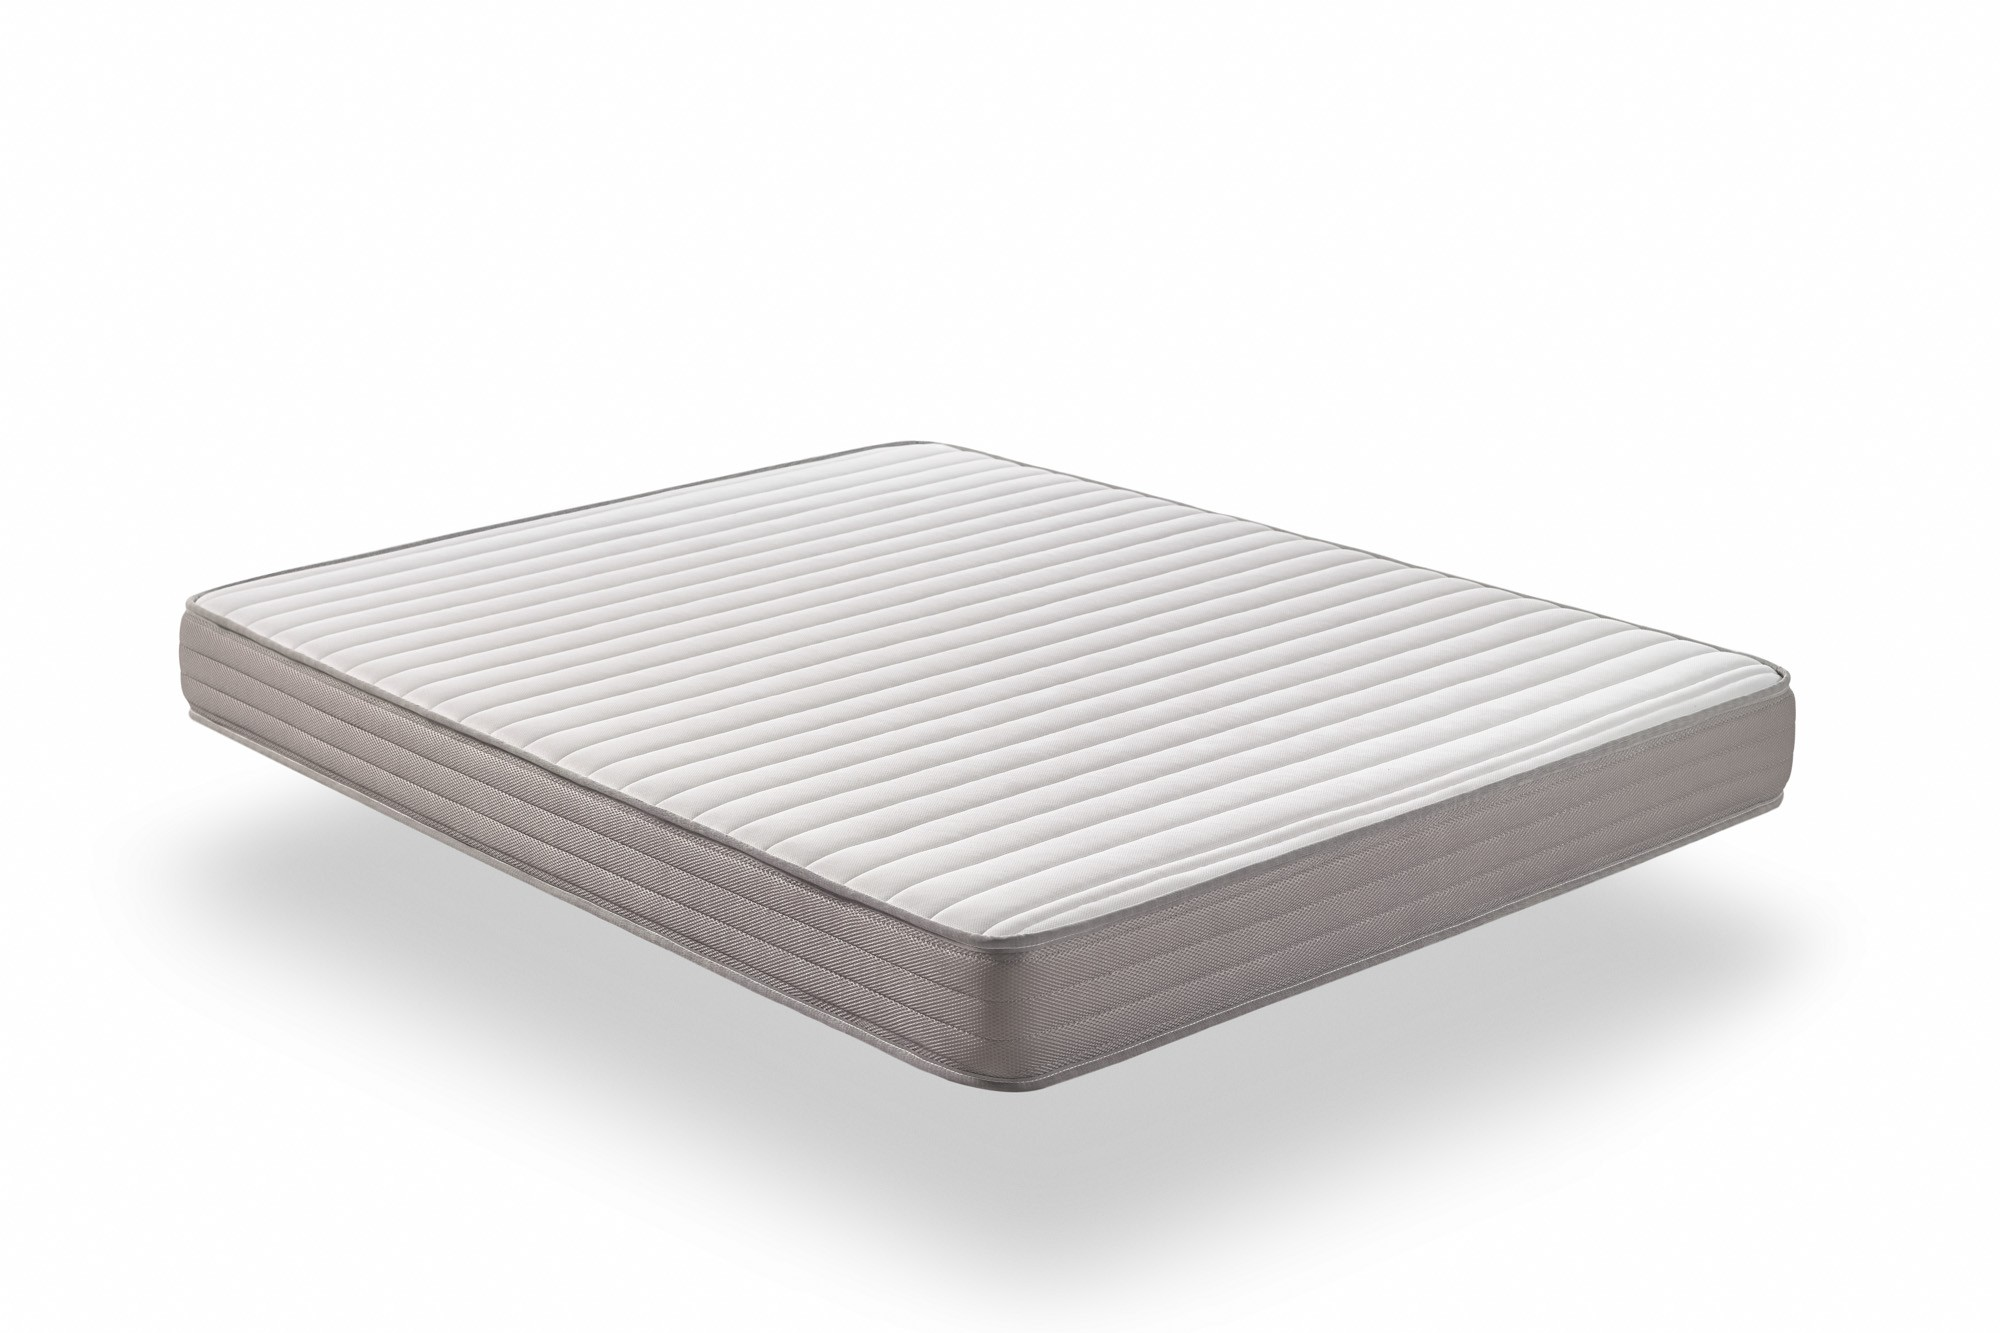 The side has been fitted with the Airfresh system which allows perfect air circulation between the fabrics and prevents any concentration of humidity in the mattress.